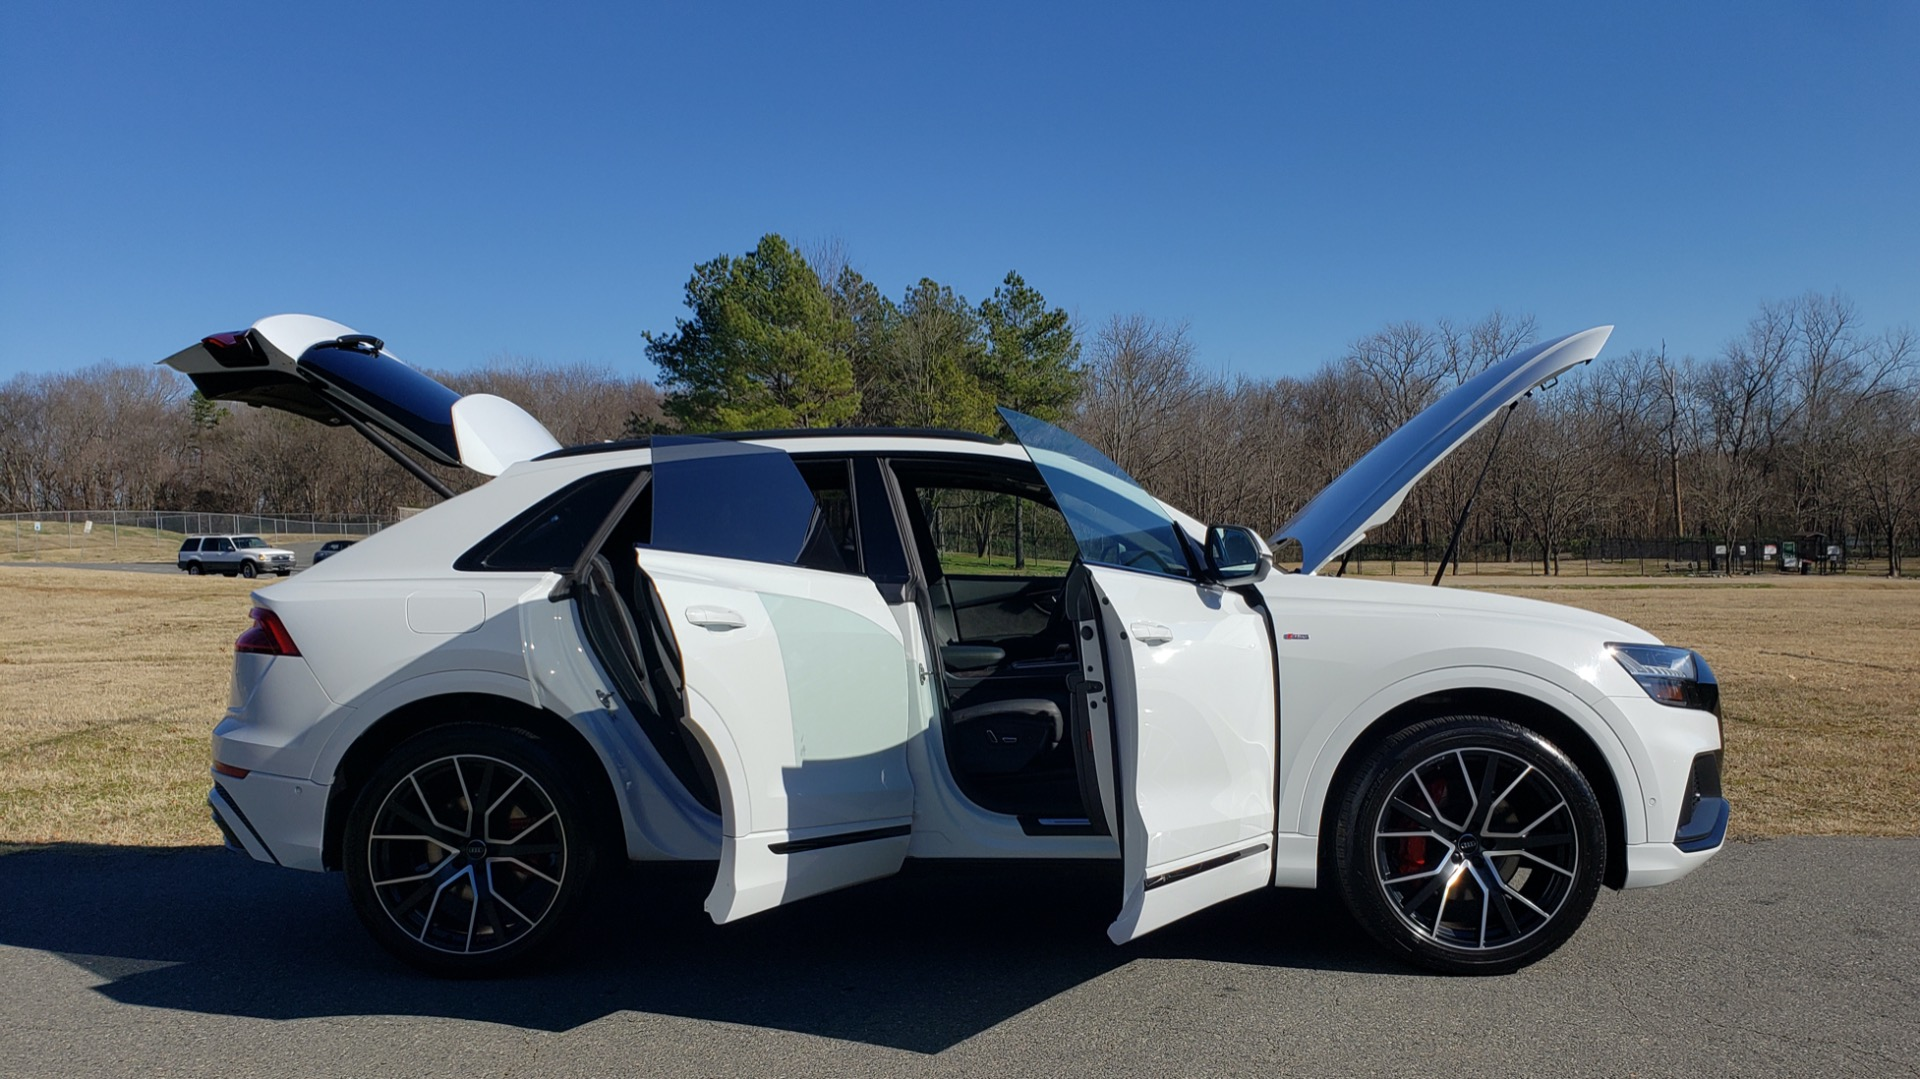 Used 2019 Audi Q8 PRESTIGE S-LINE / LUX PKG / ADAPT CHASSIS / YEAR ONE / CLD WTHR for sale Sold at Formula Imports in Charlotte NC 28227 17